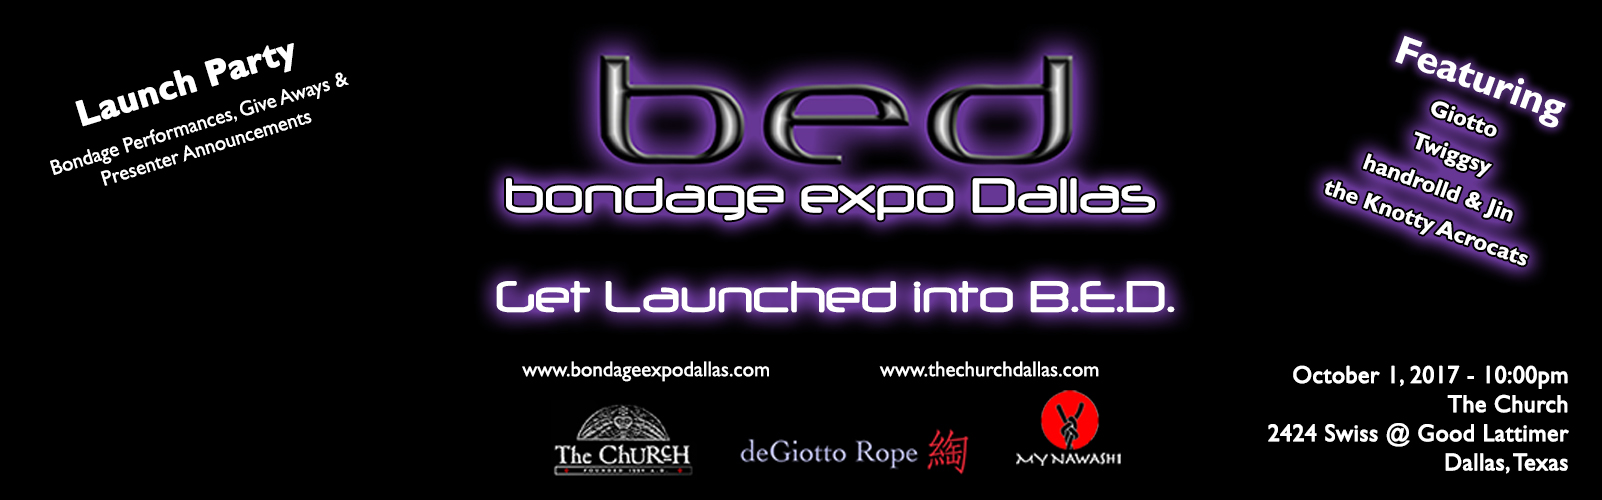 10.01.2017 - BED Launch Party